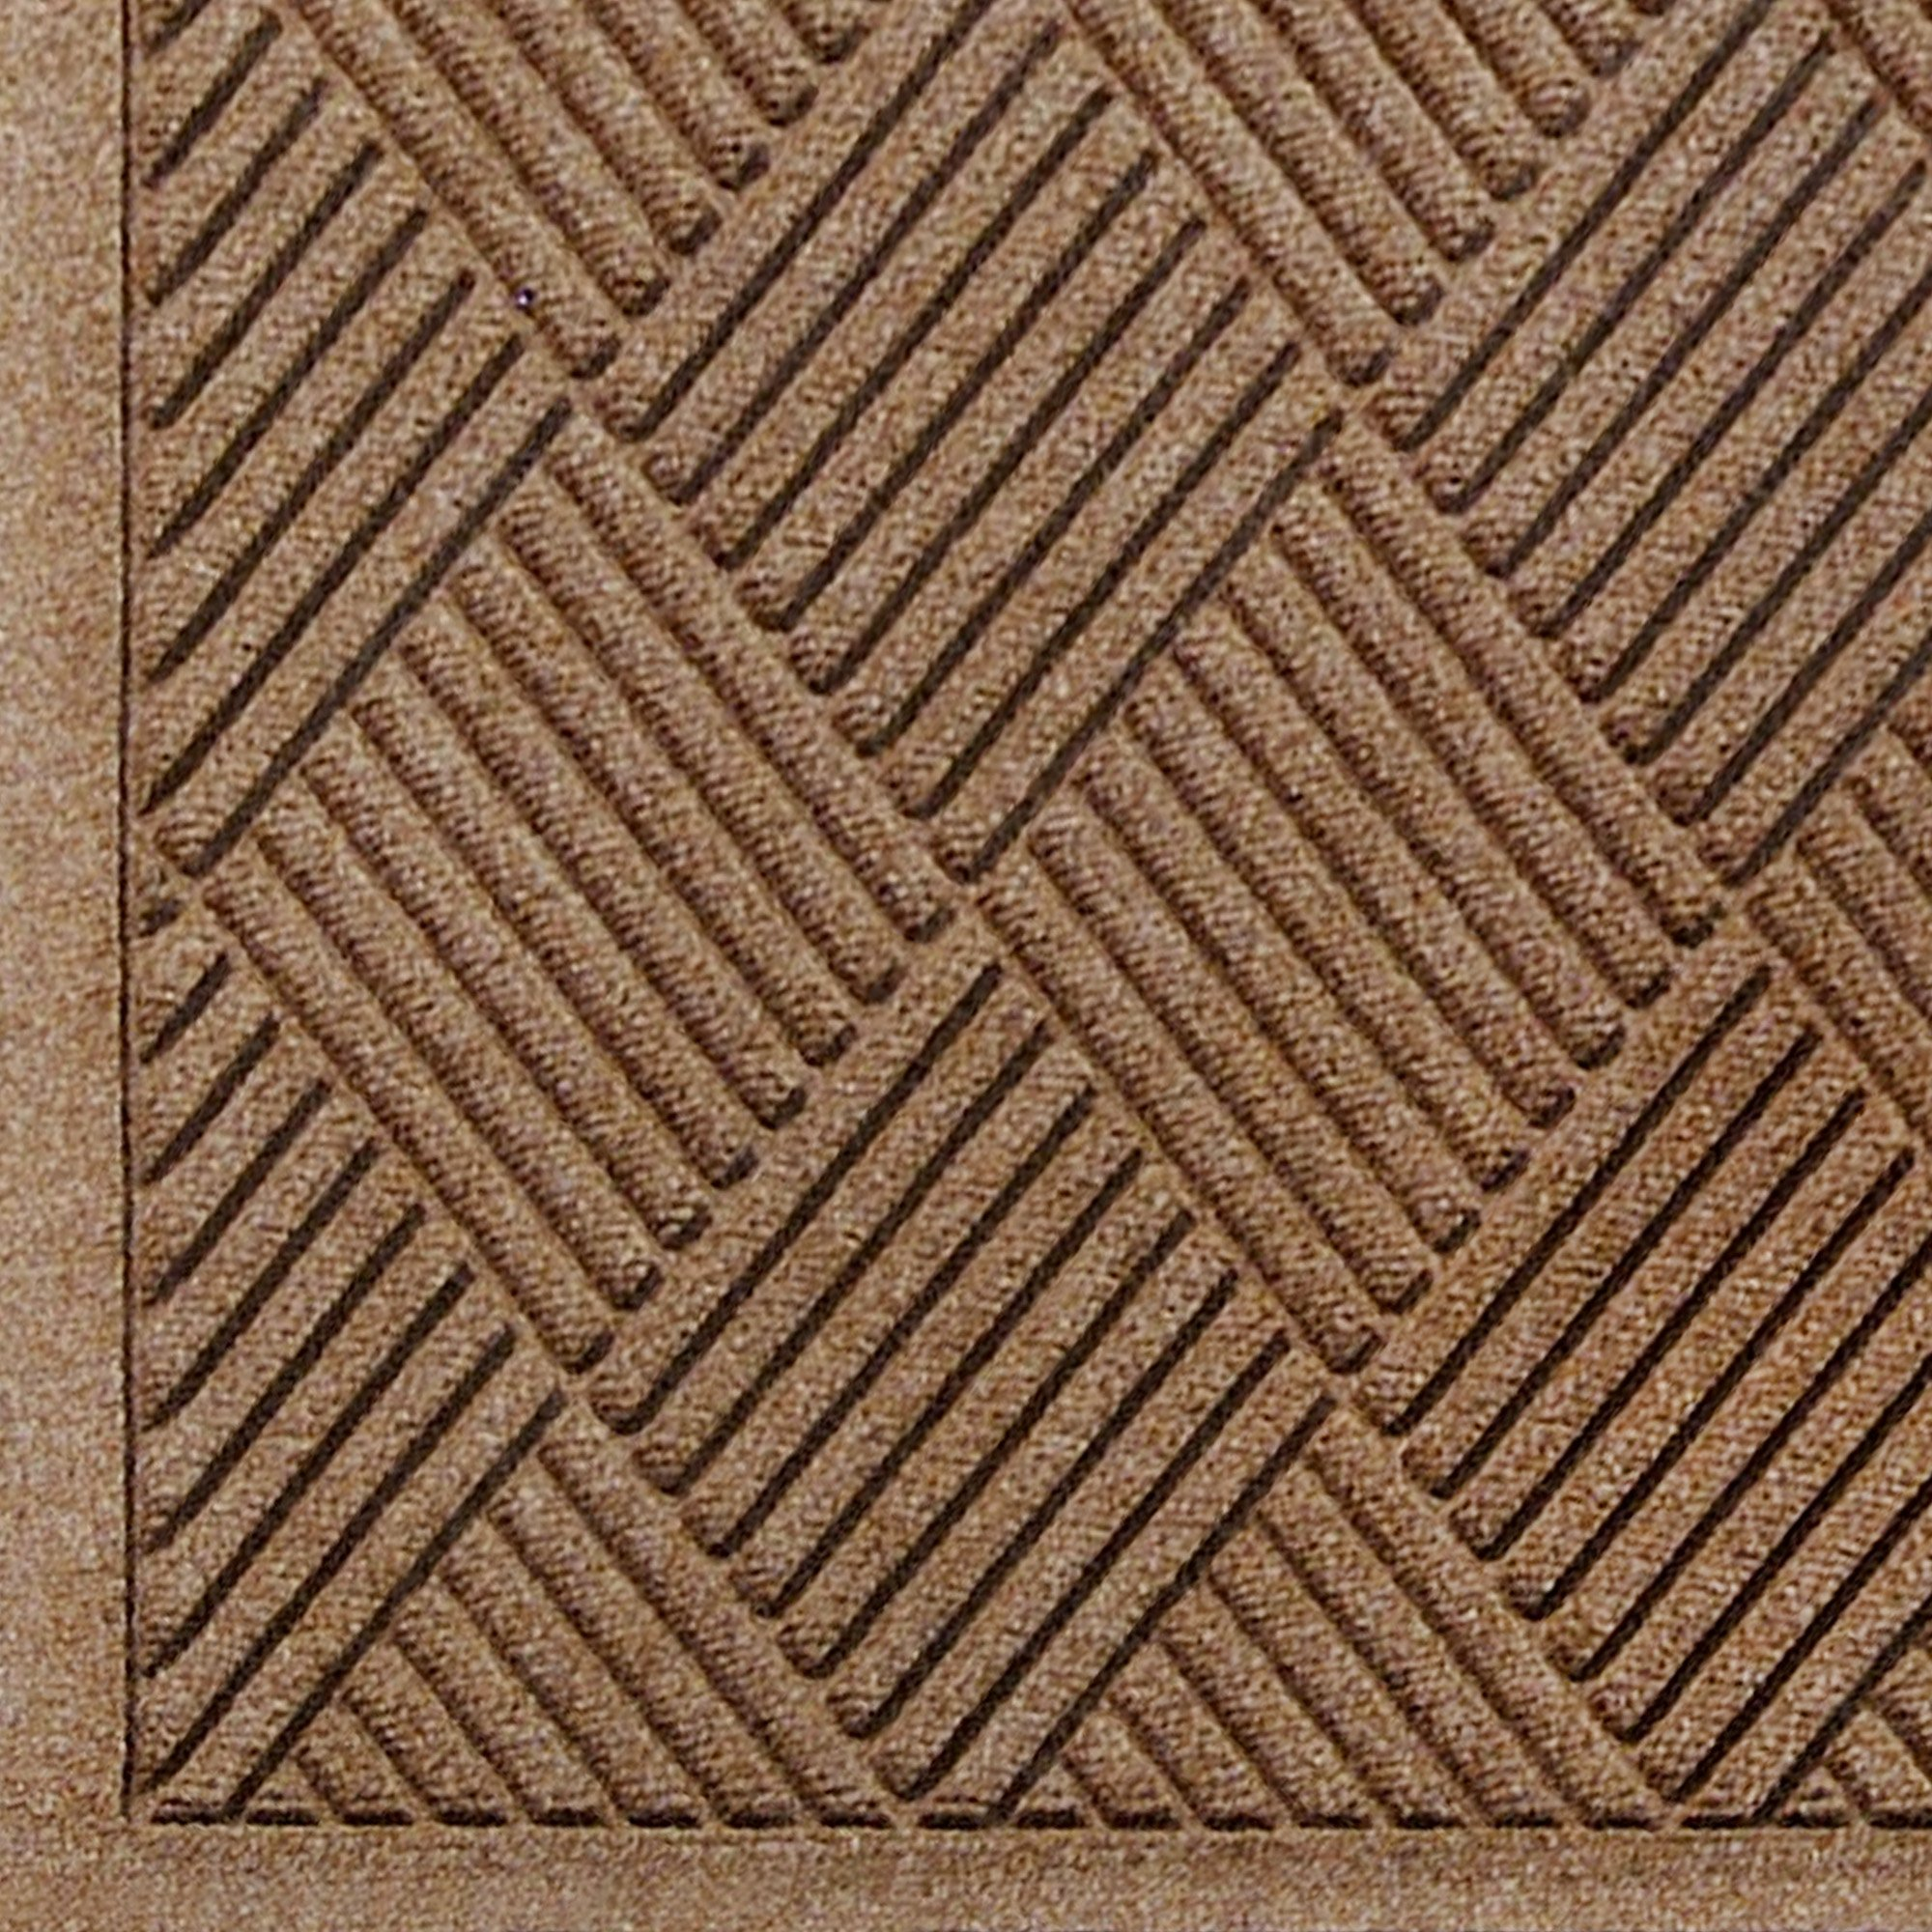 Andersen 221 Waterhog Fashion Diamond Polypropylene Fiber Entrance Indoor/Outdoor Floor Mat, SBR Rubber Backing, 6' Length x 4' Width, 3/8'' Thick, Medium Brown